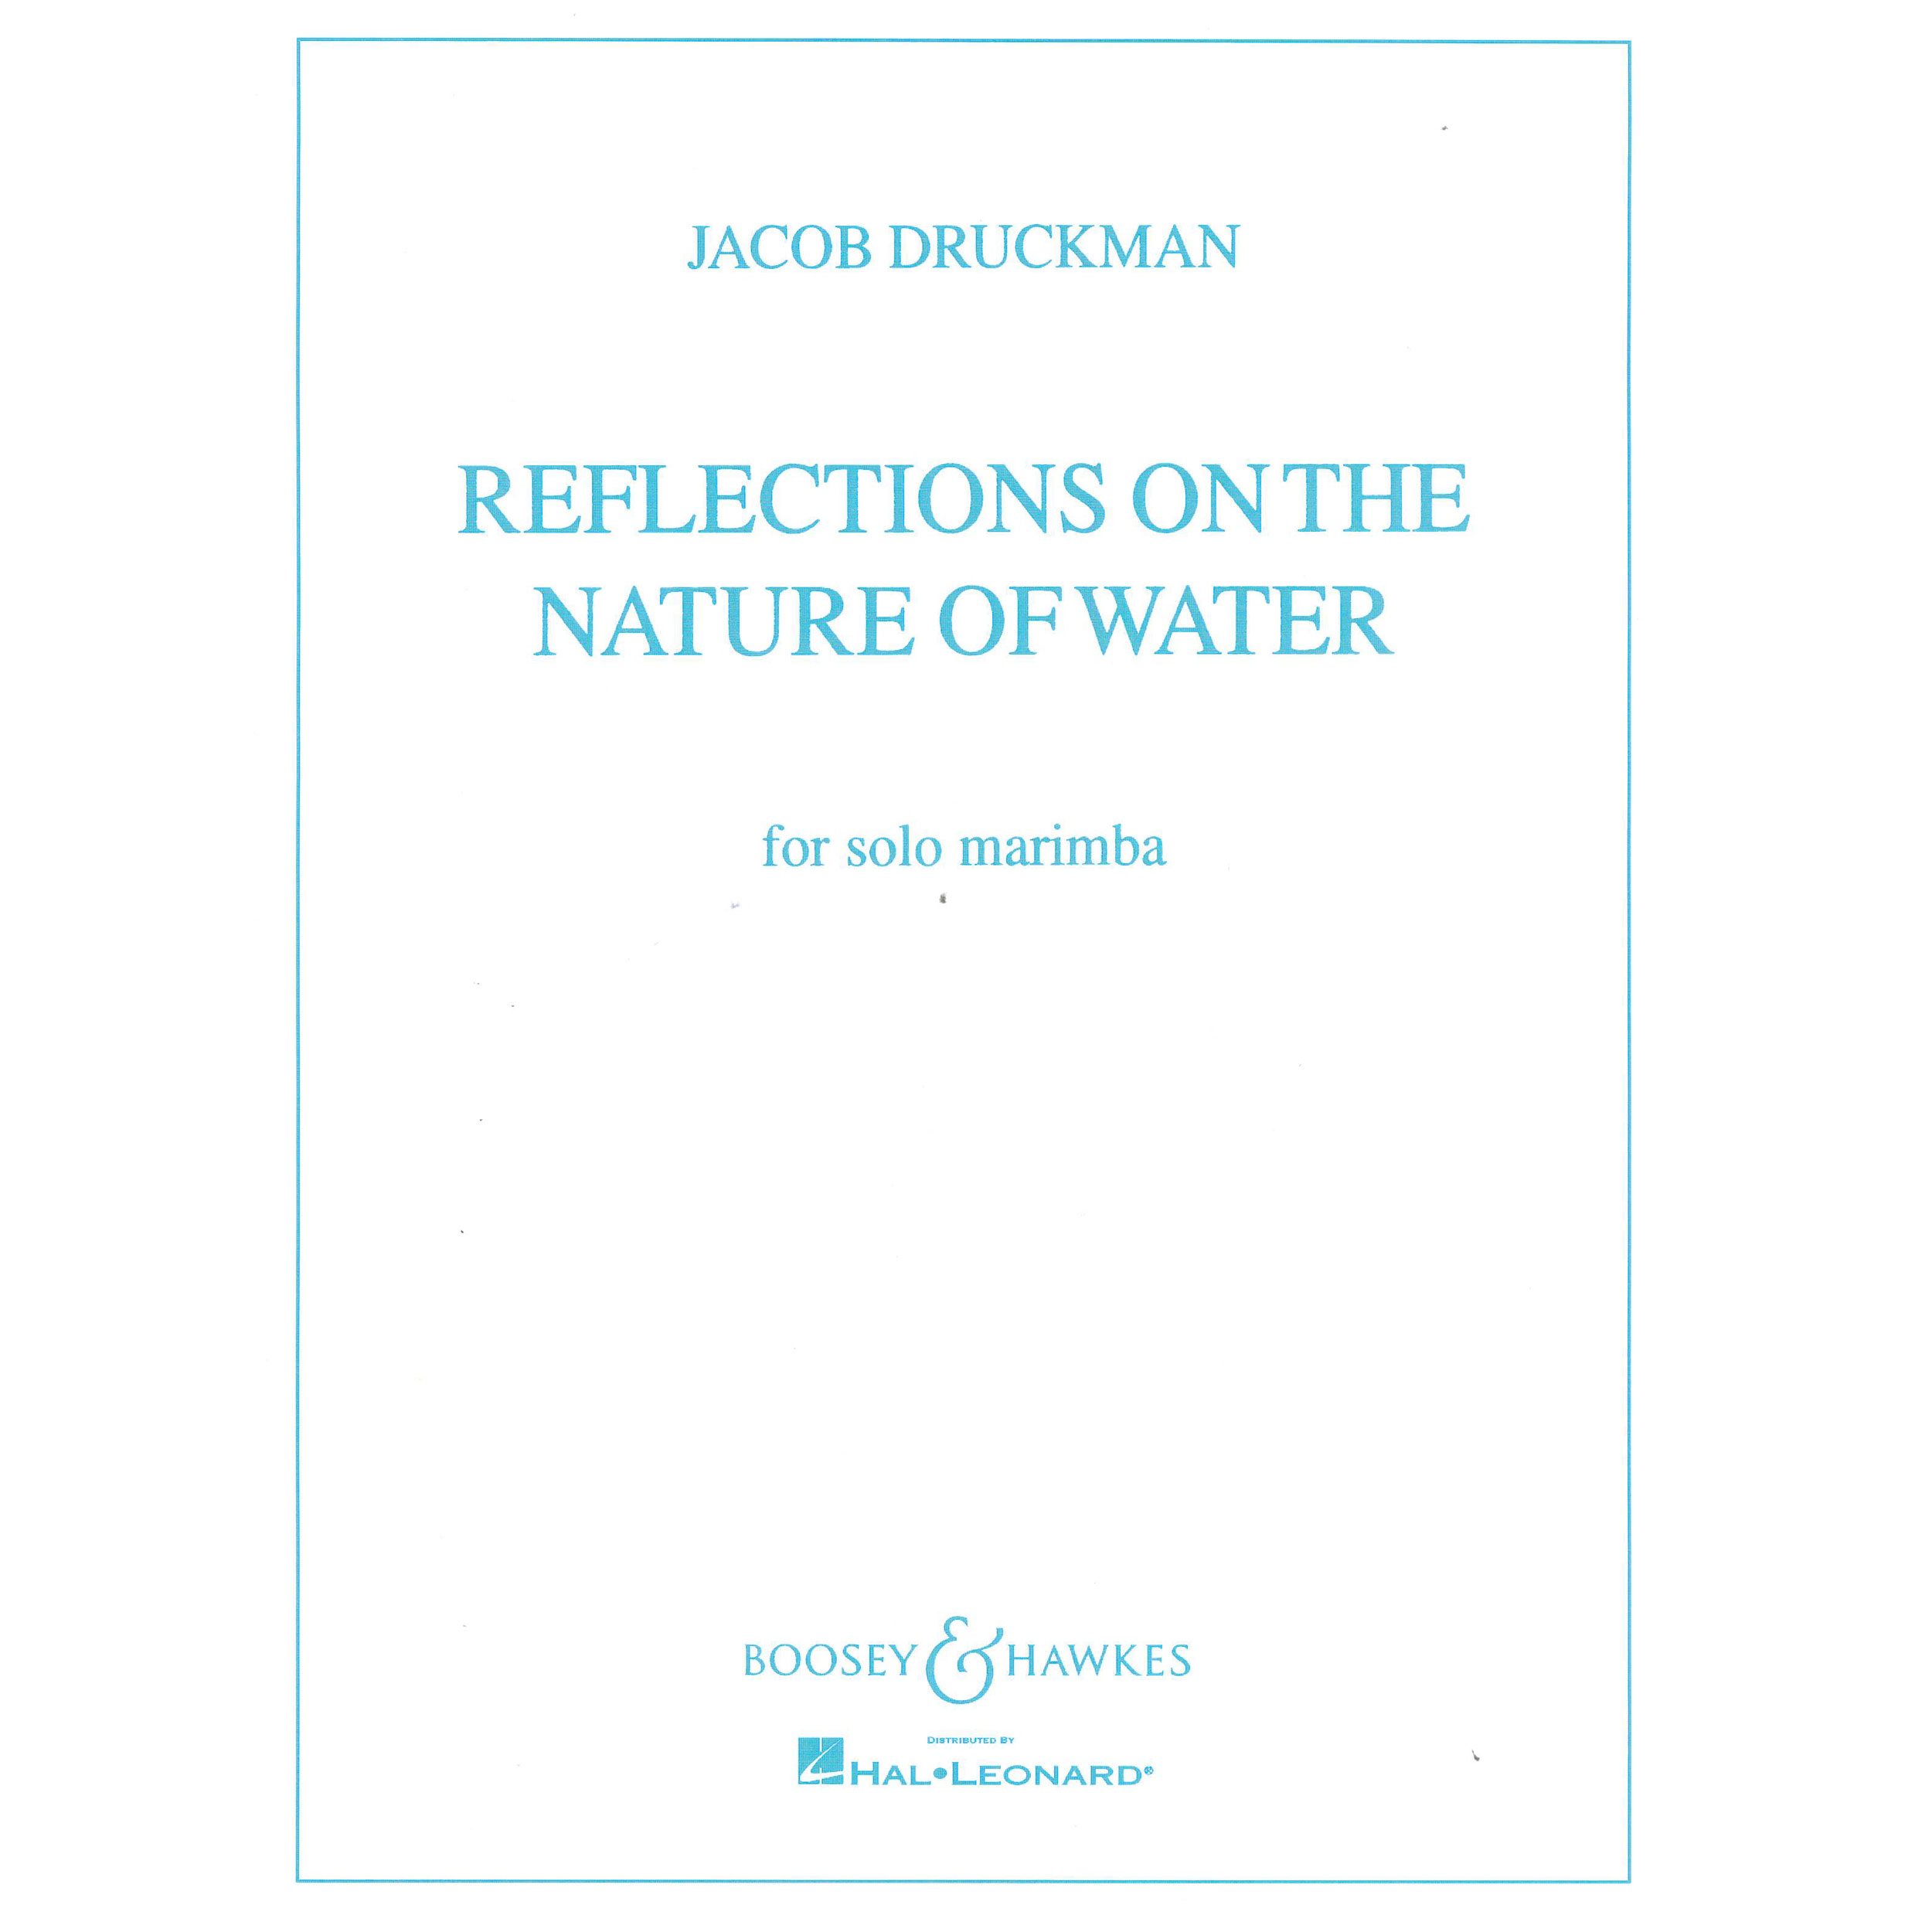 Reflections on the Nature of Water by Jacob Druckman